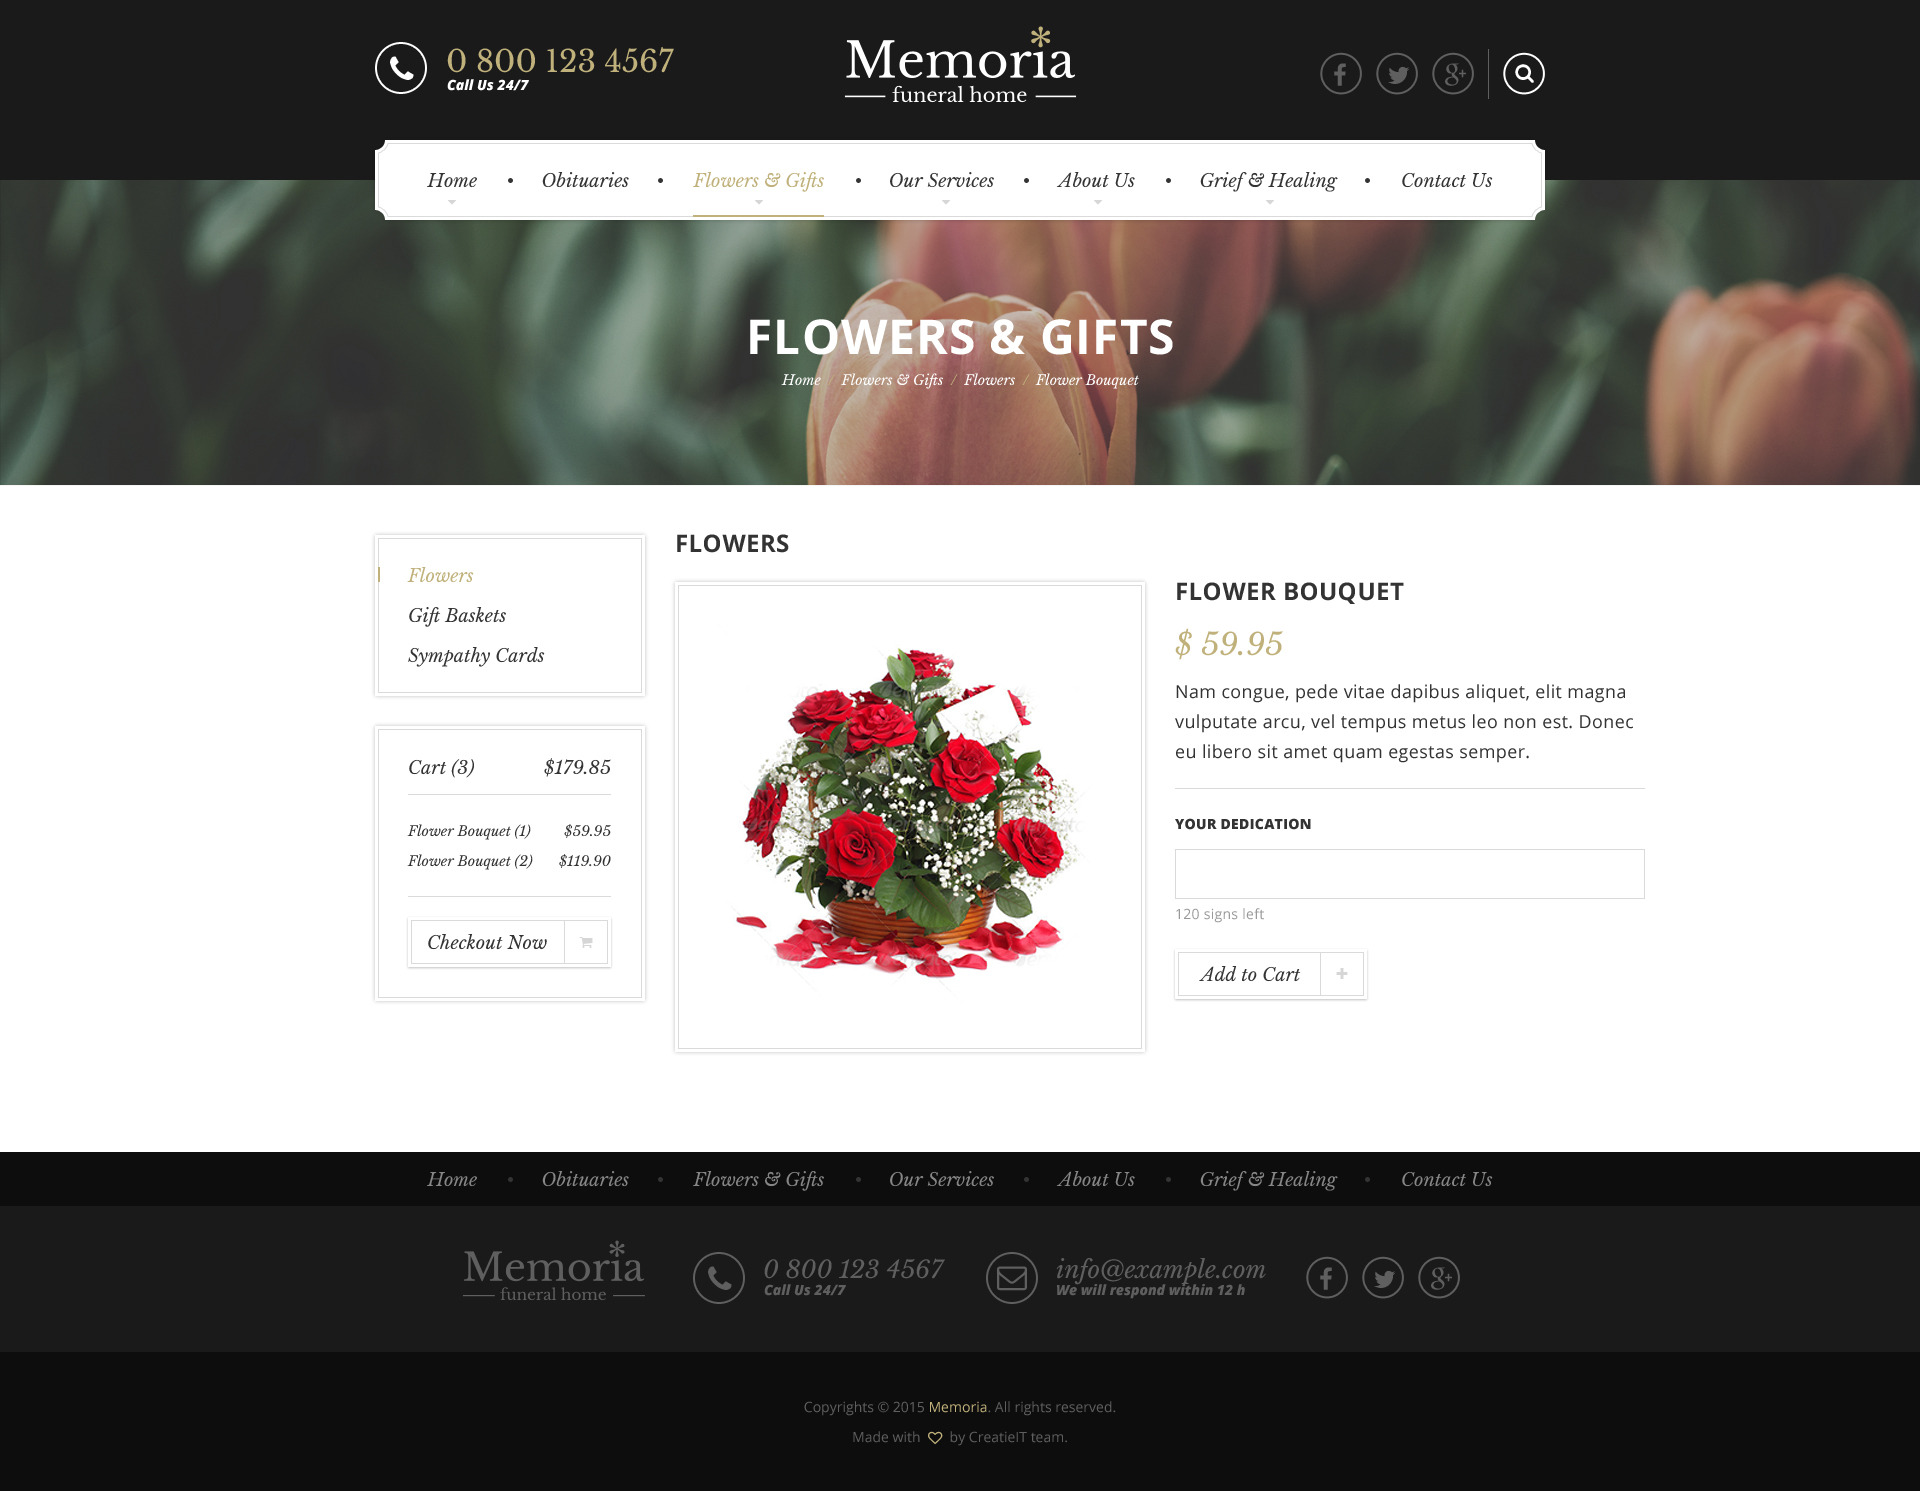 memoria funeral home html template by createit pl themeforest